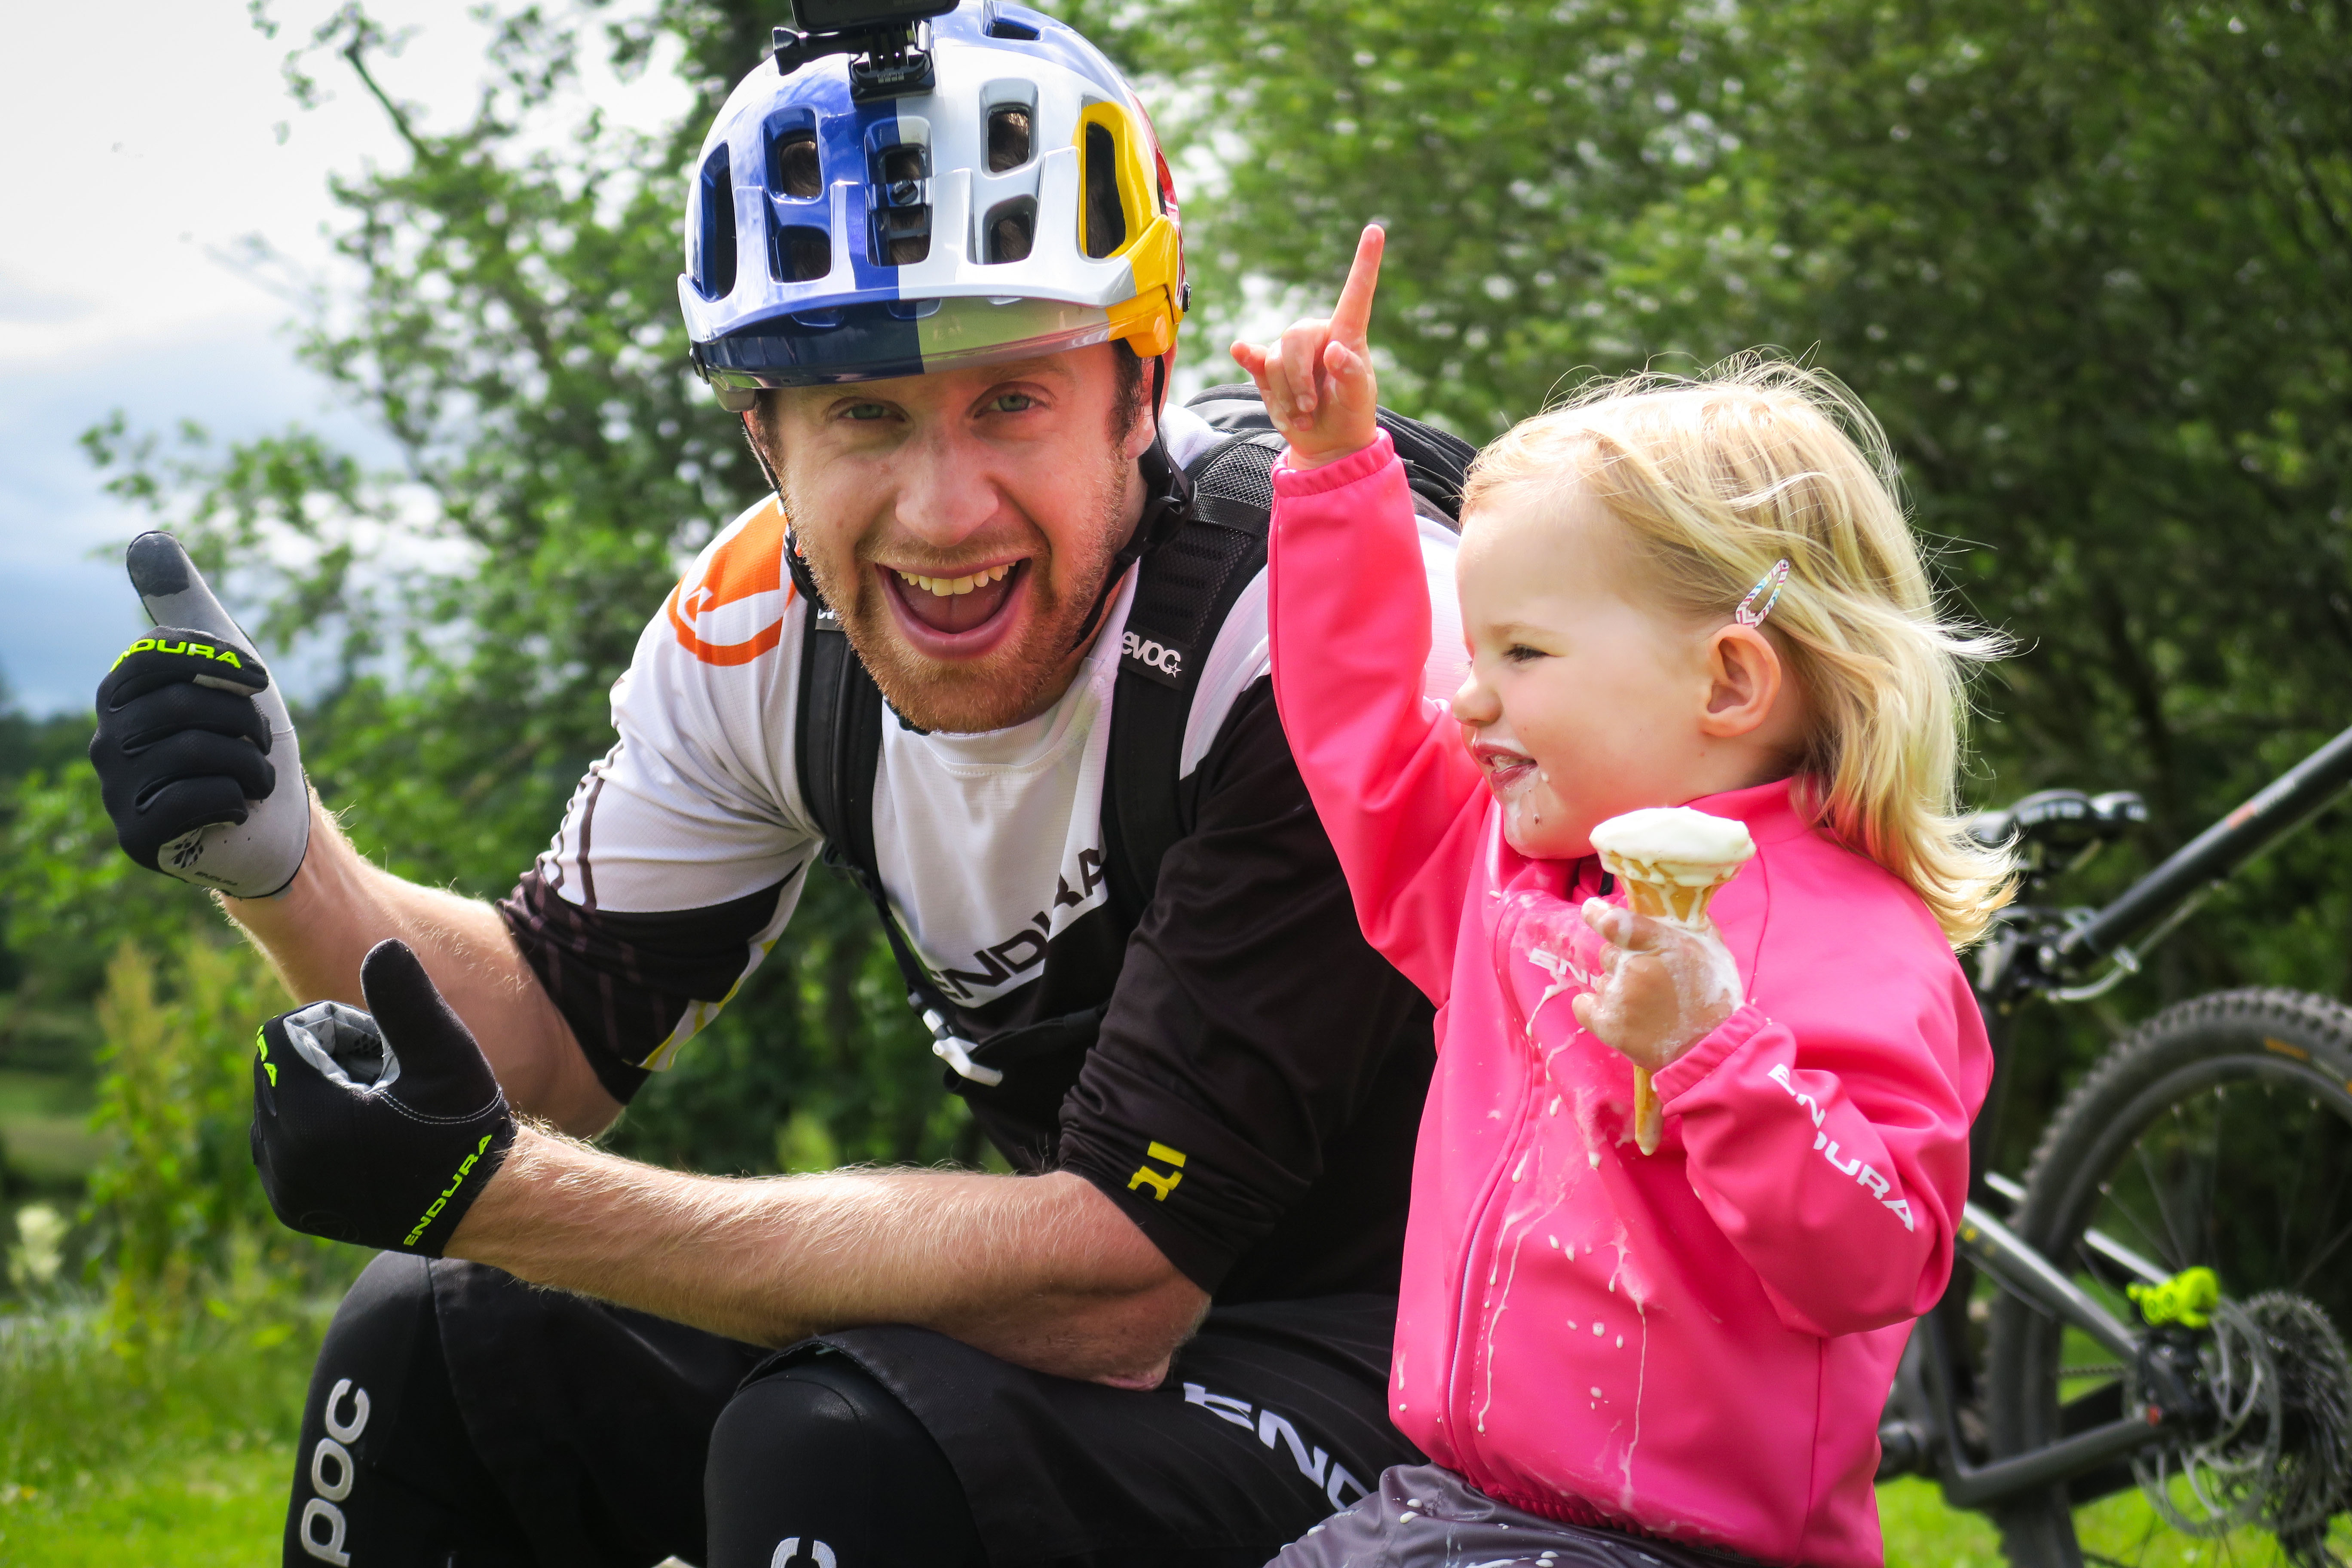 Media release: Danny MacAskill's new online video, 'Danny Daycare'; best 'uncle' ever?